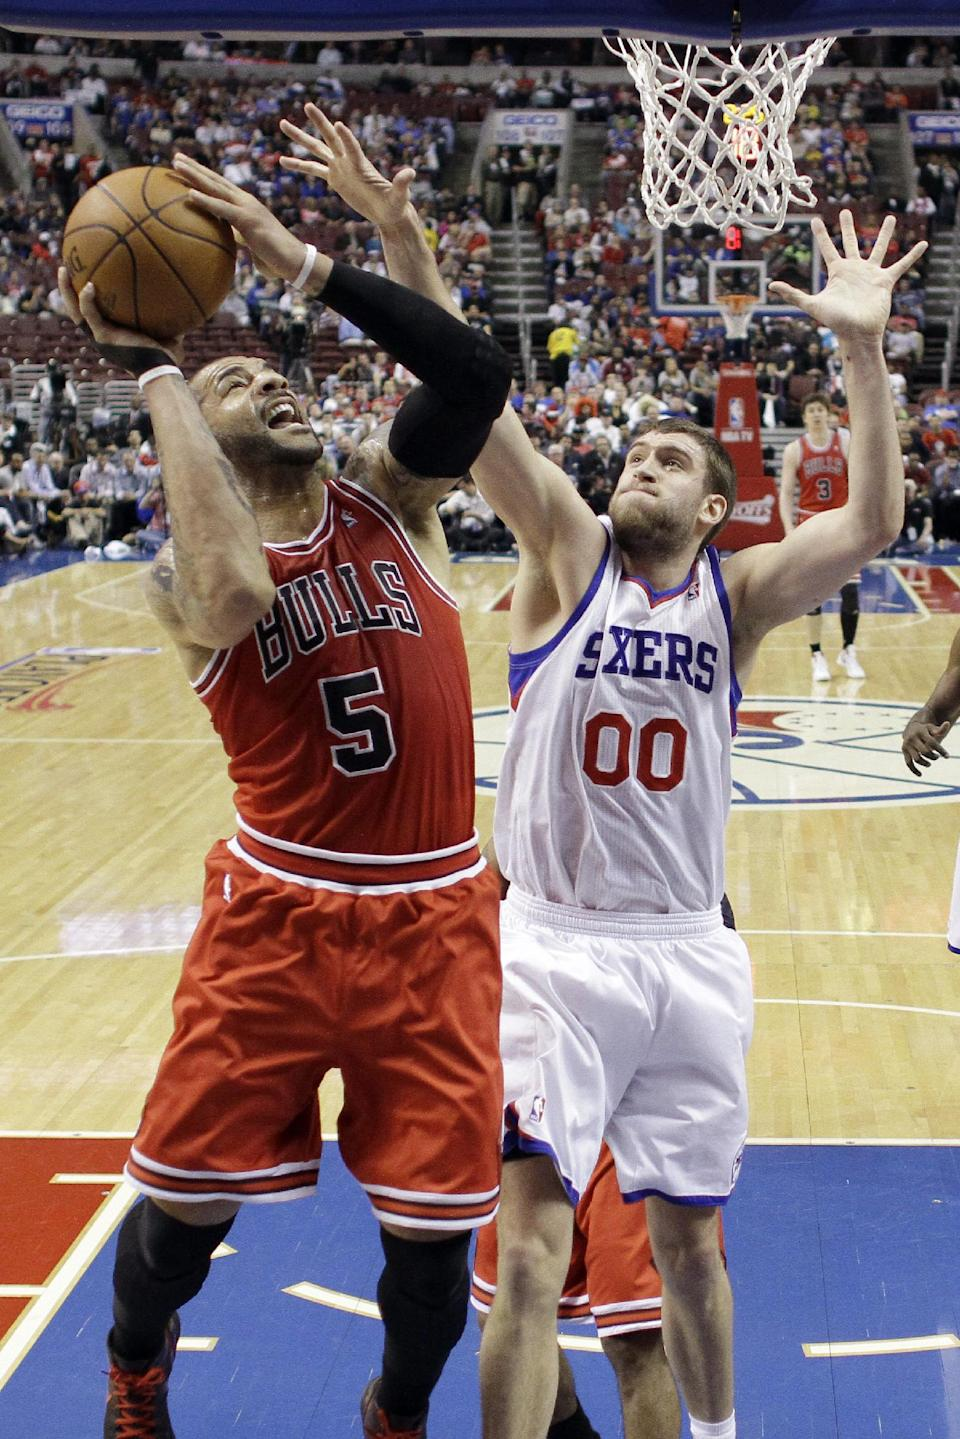 Chicago Bulls' Carlos Boozer (5) shoots as Philadelphia 76ers' Spencer Hawes (00) defends in the first half of Game 6 in an NBA basketball first-round playoff series, Thursday, May 10, 2012, in Philadelphia. (AP Photo/Matt Slocum)